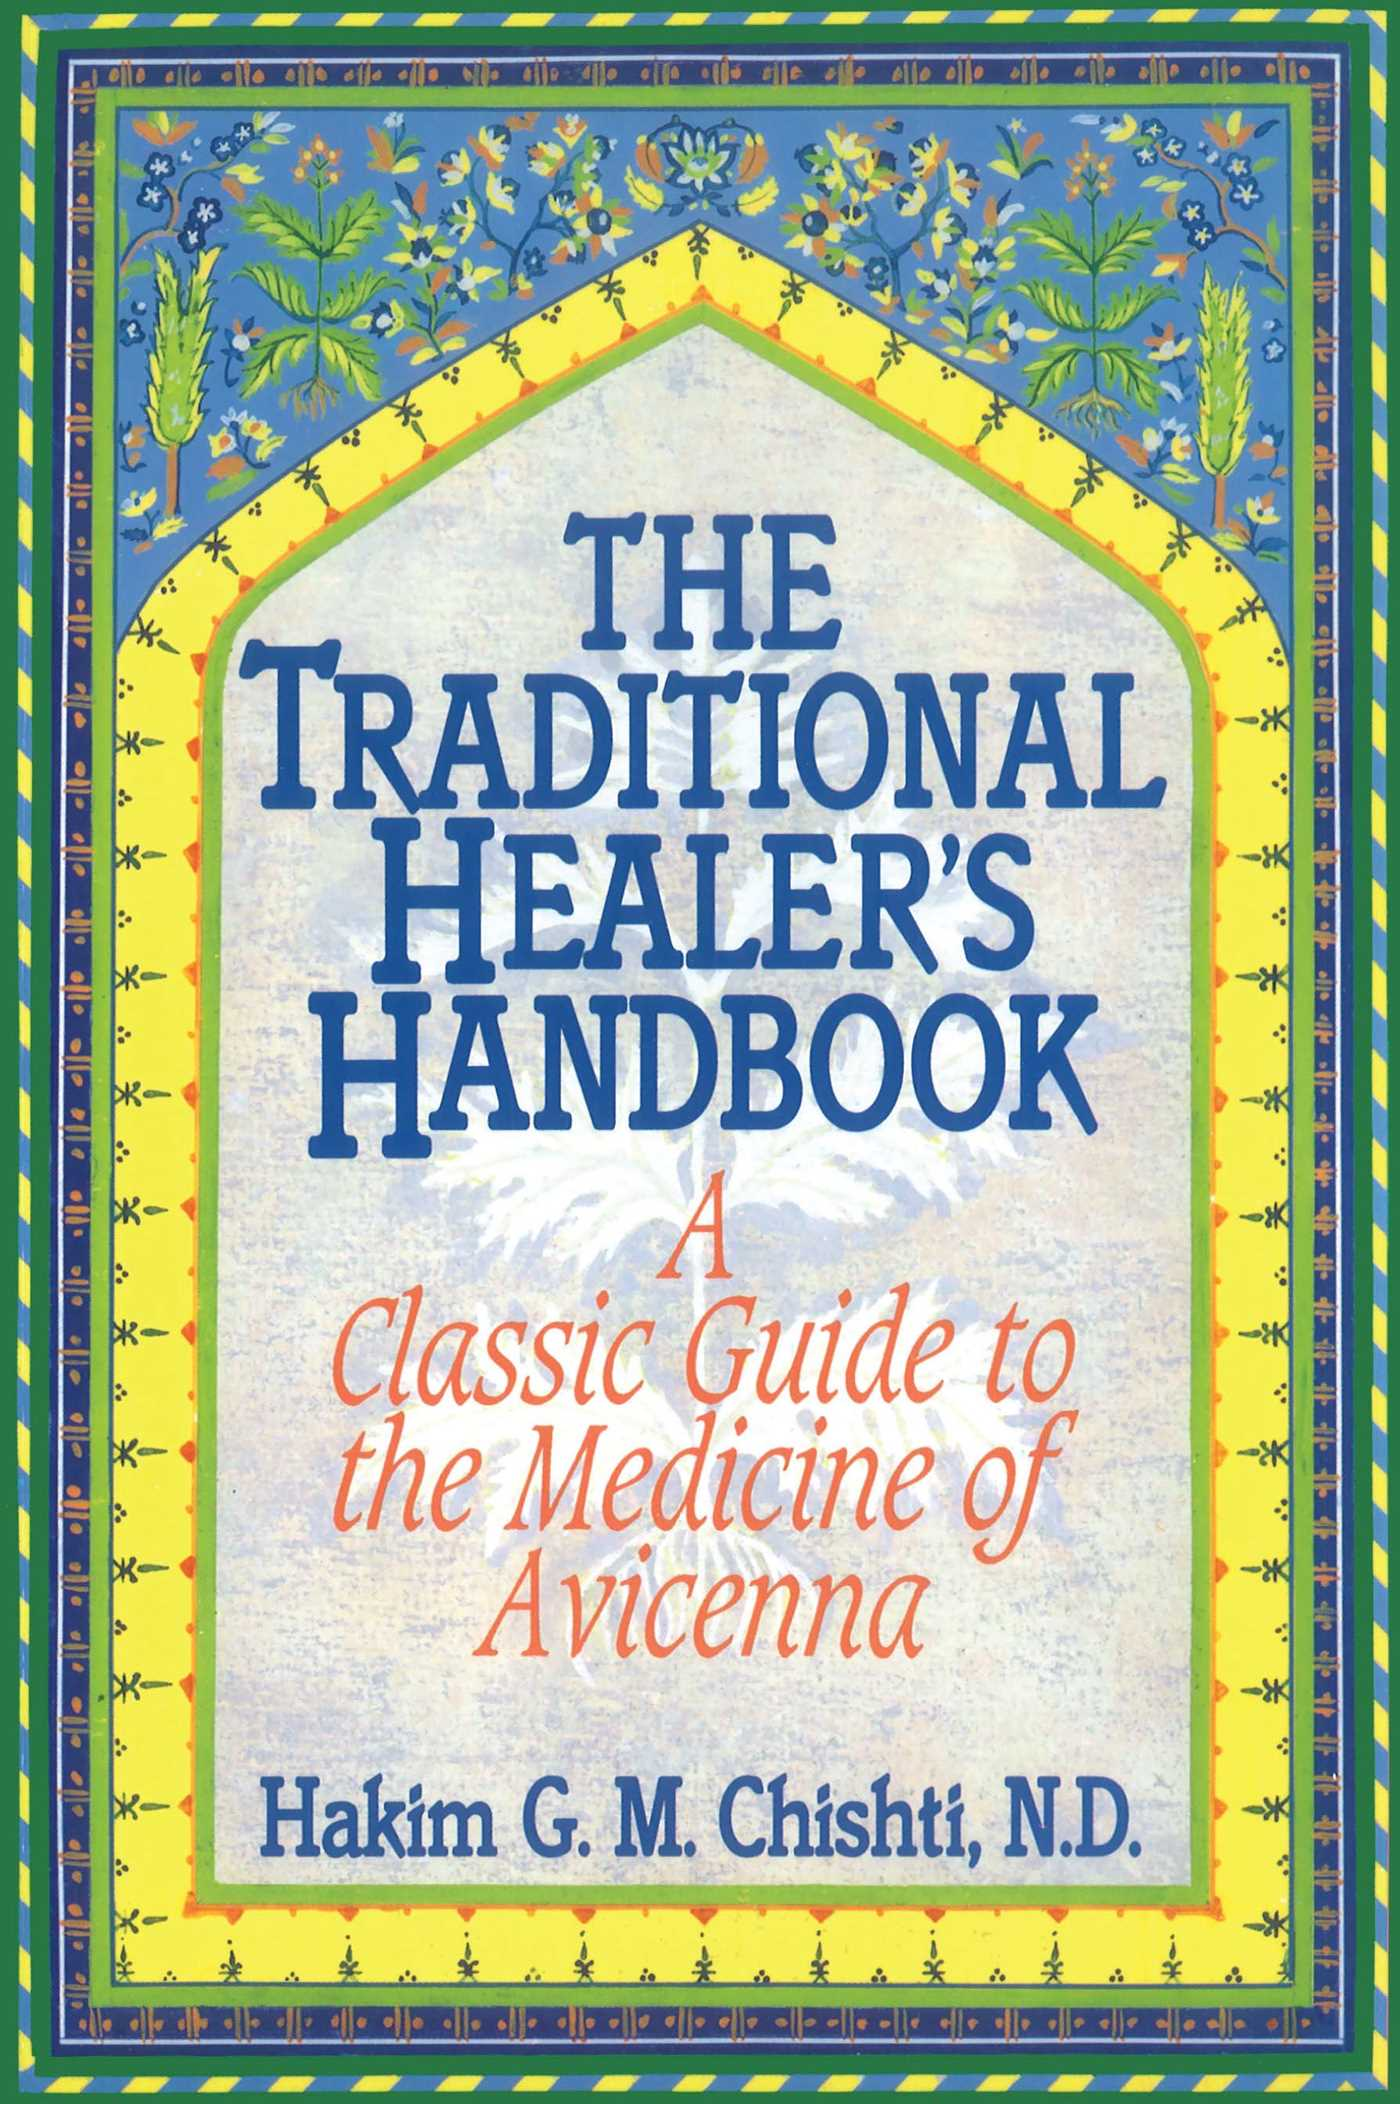 Traditional-healers-handbook-9780892814381_hr